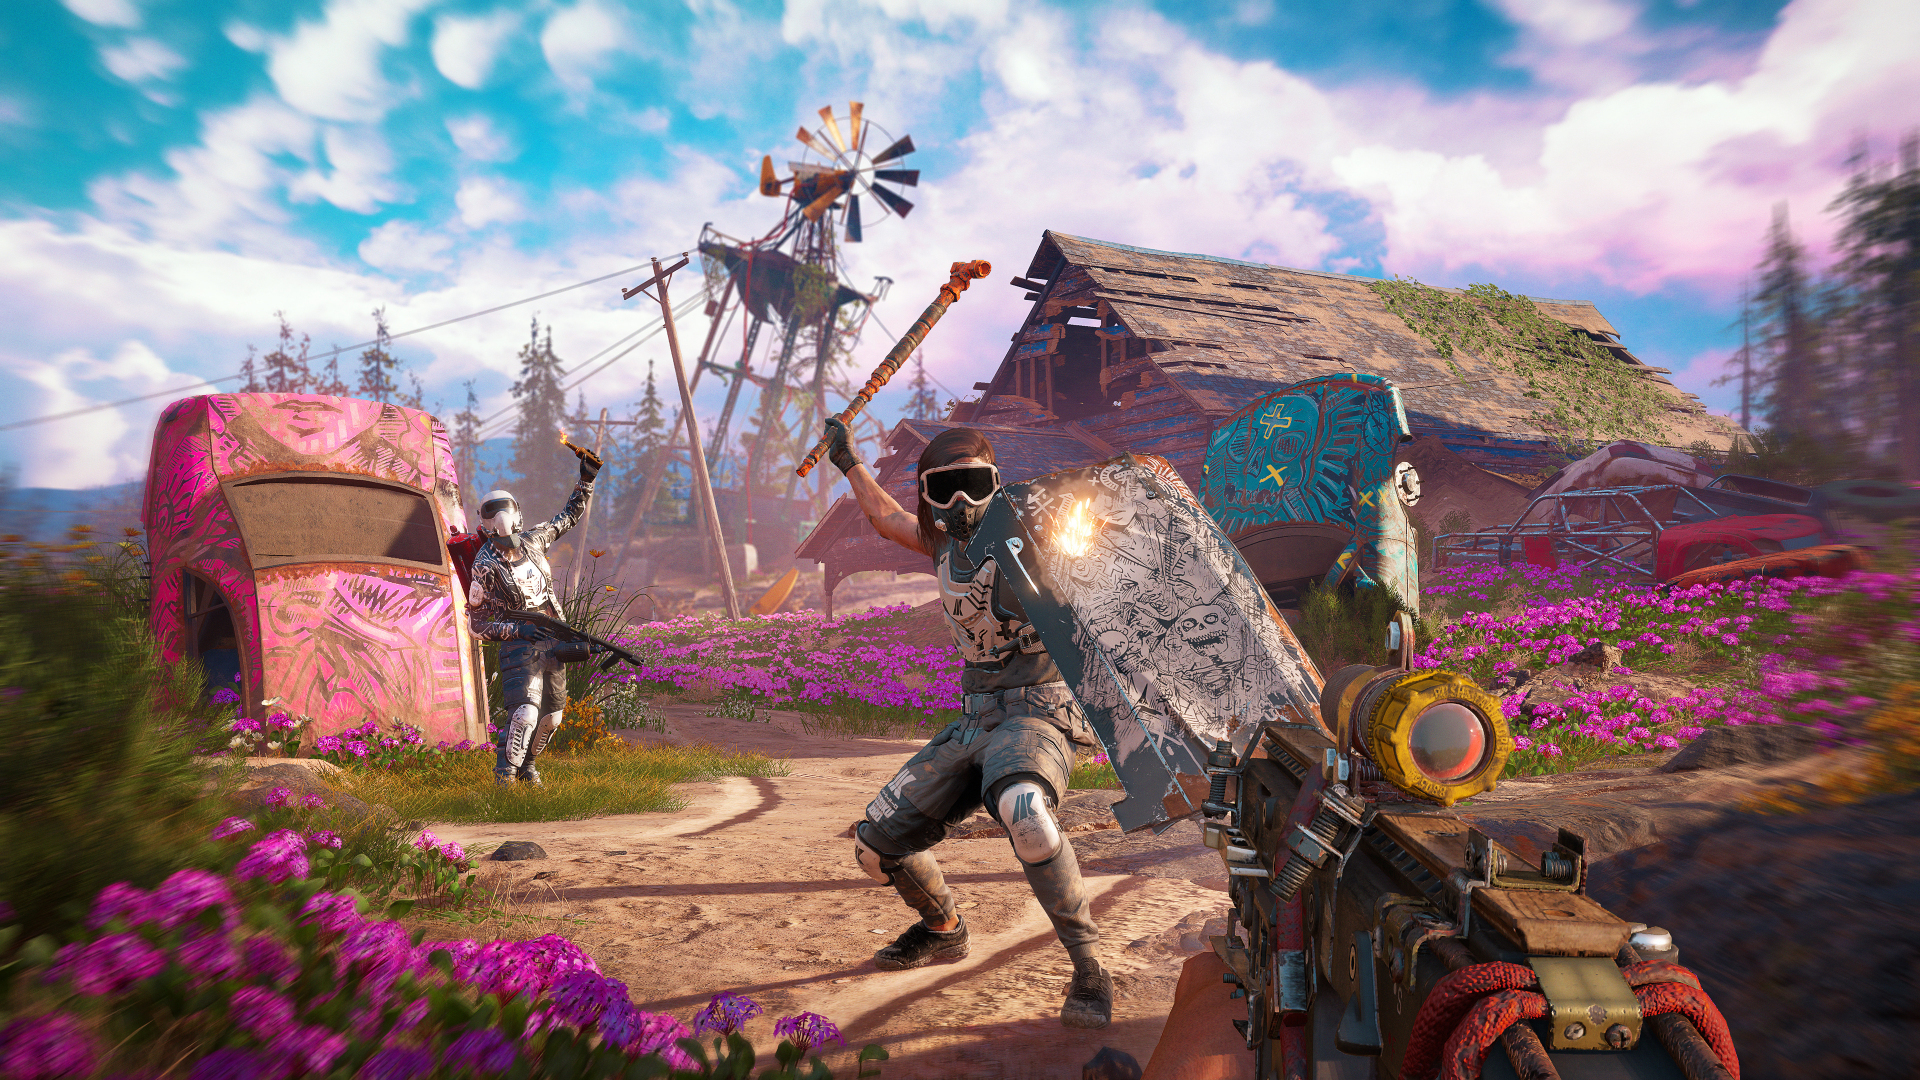 Download 1920x1080 Wallpaper Far Cry New Dawn Video Game 2018